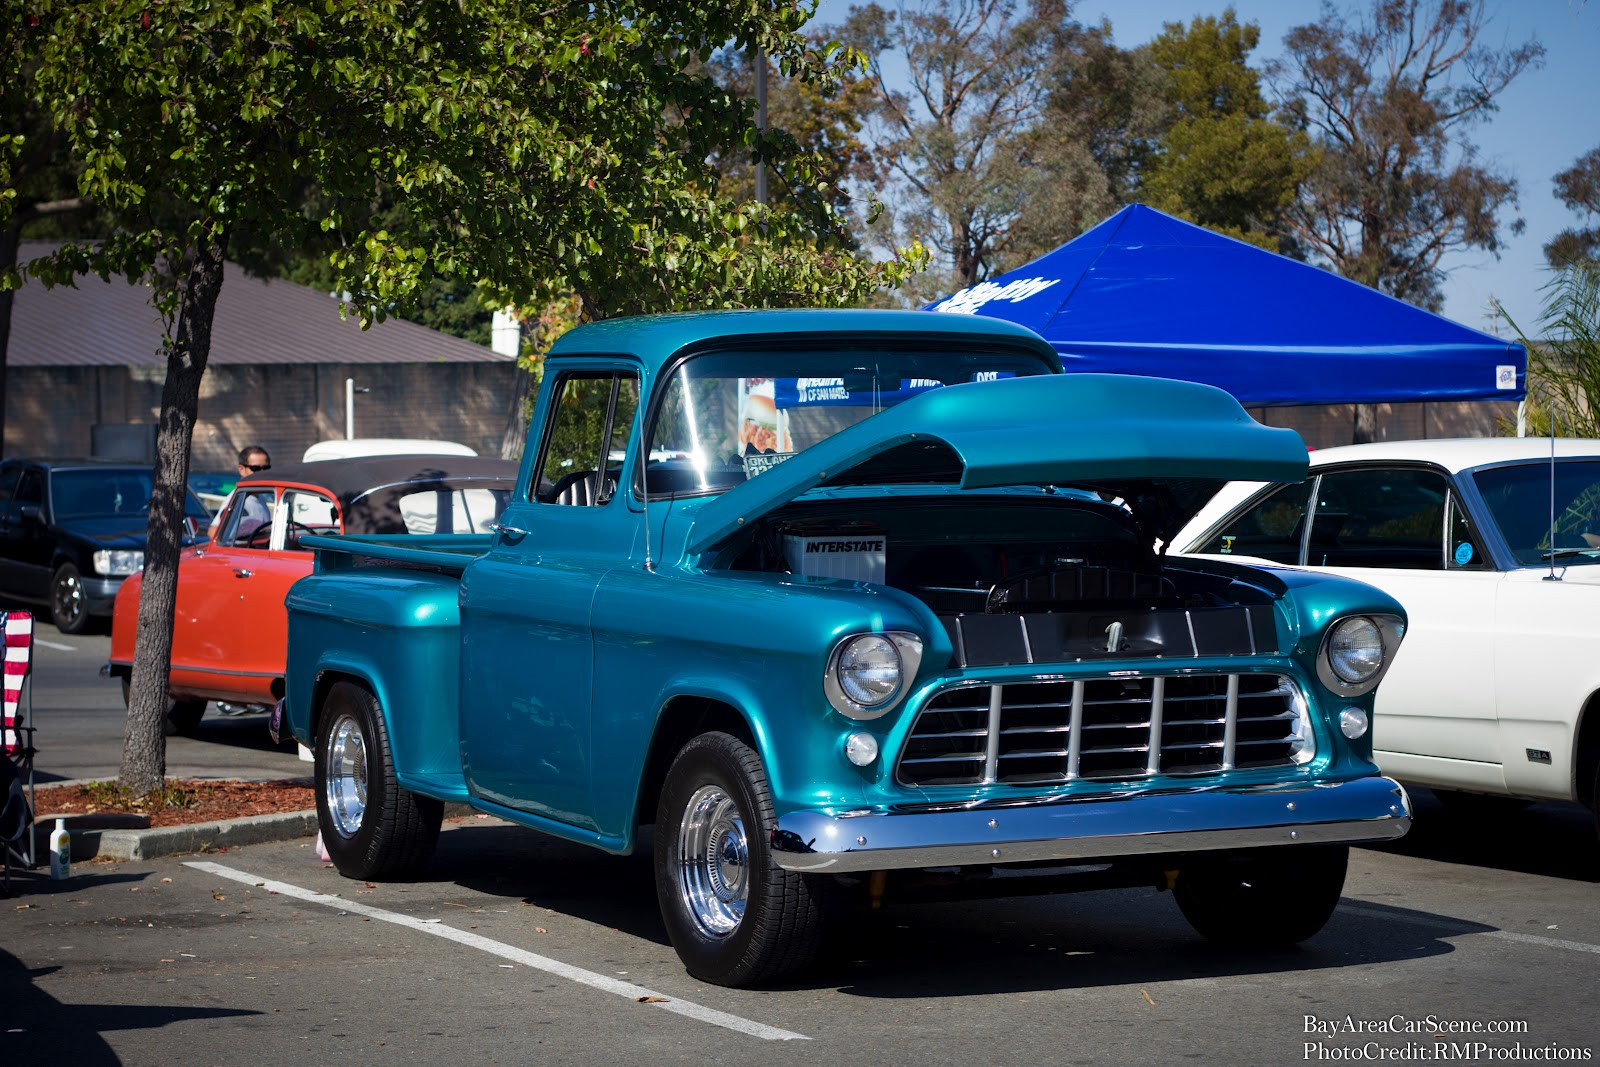 Bay Area Car Scene Orchard Supply Hardware Car Show - Bay area car shows this weekend